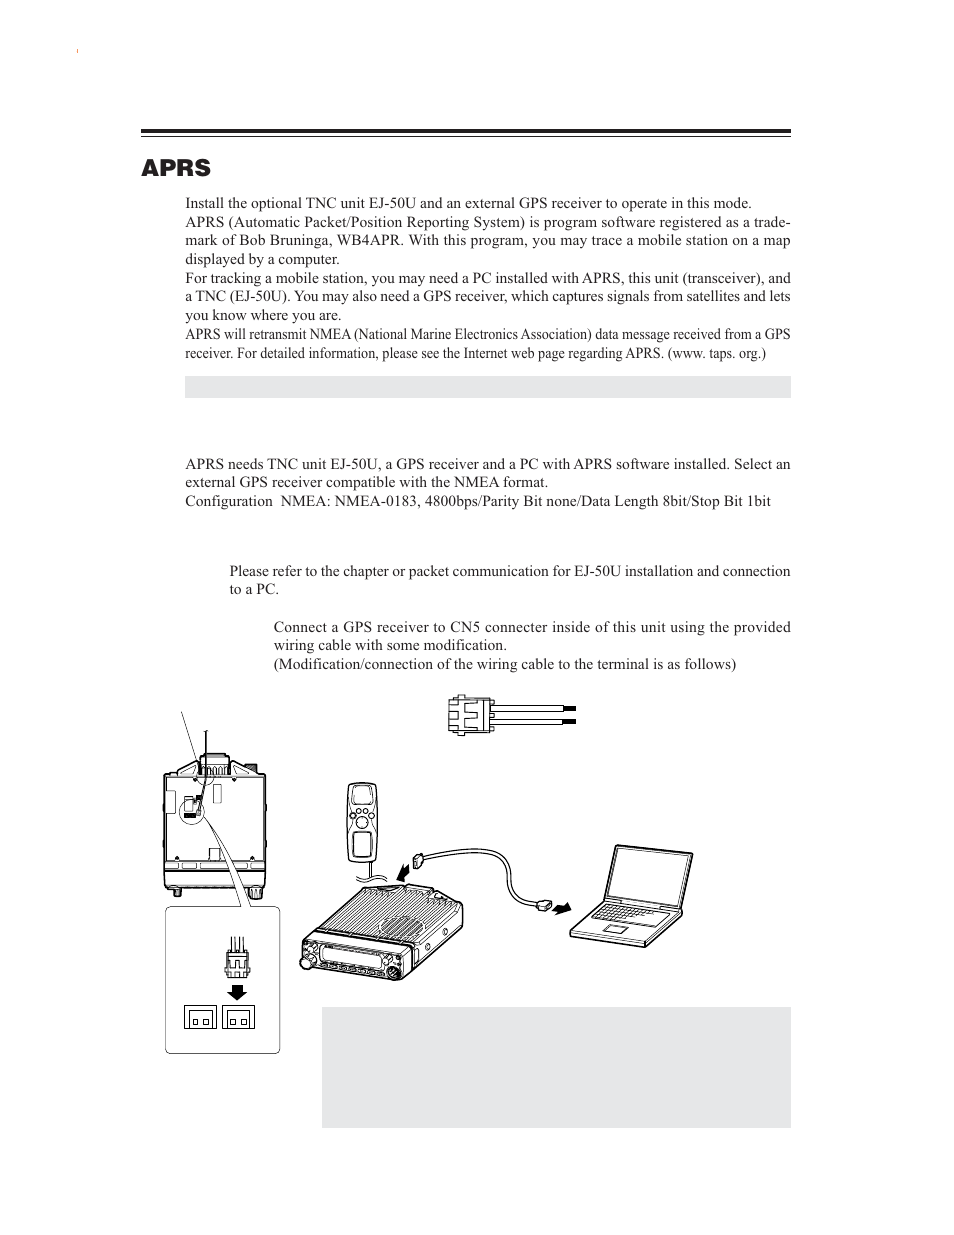 Aprs, Aprs settings   Alinco DR-635 User Manual   Page 54 / 66